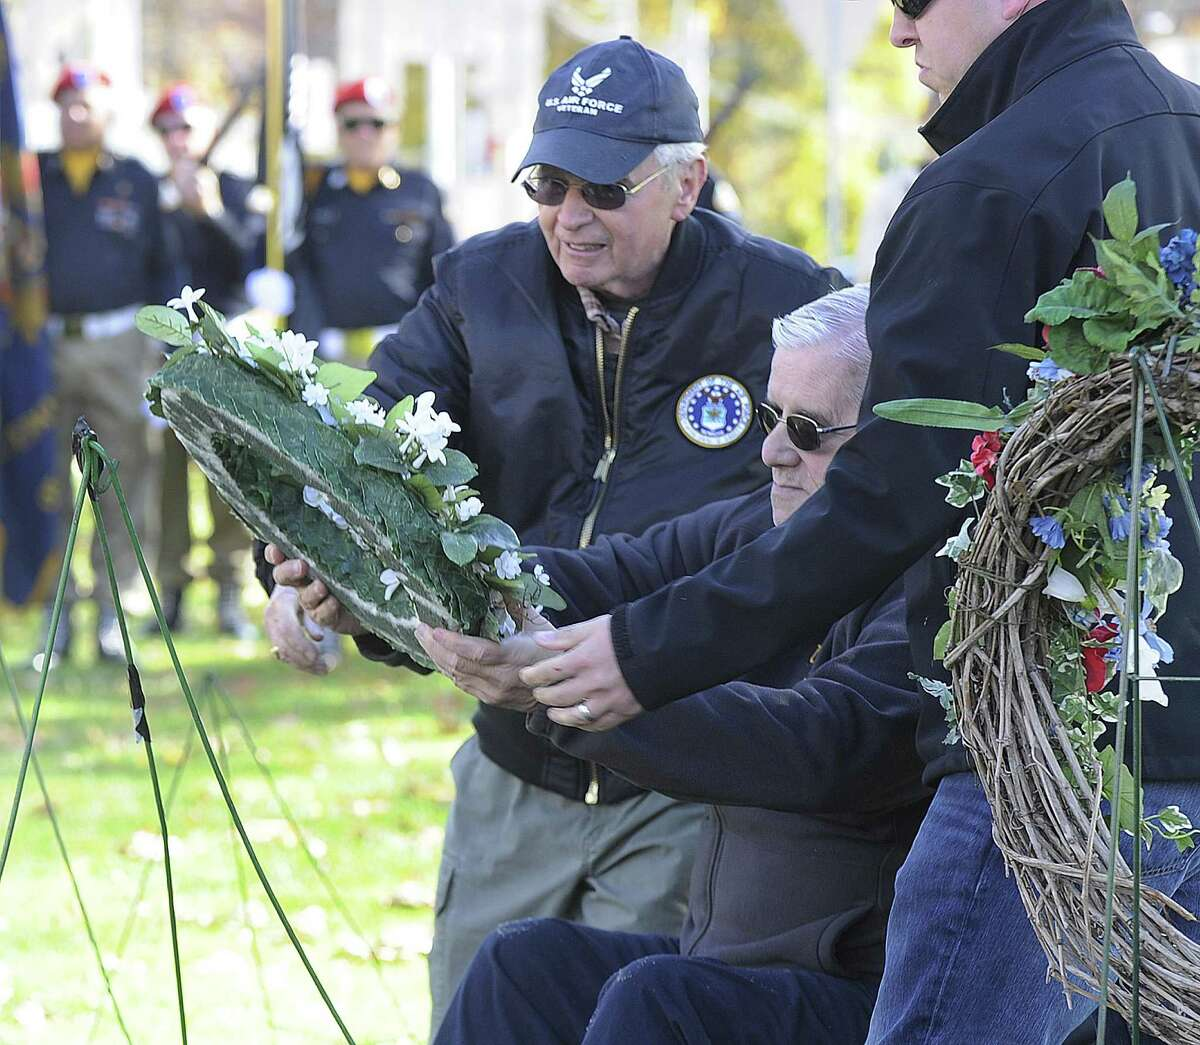 Dennis Brooks, center, places a Purity Wreath during New Milford annual Veterans Day ceremony on the New Milford Green, Friday, Nov. 11, 2016.